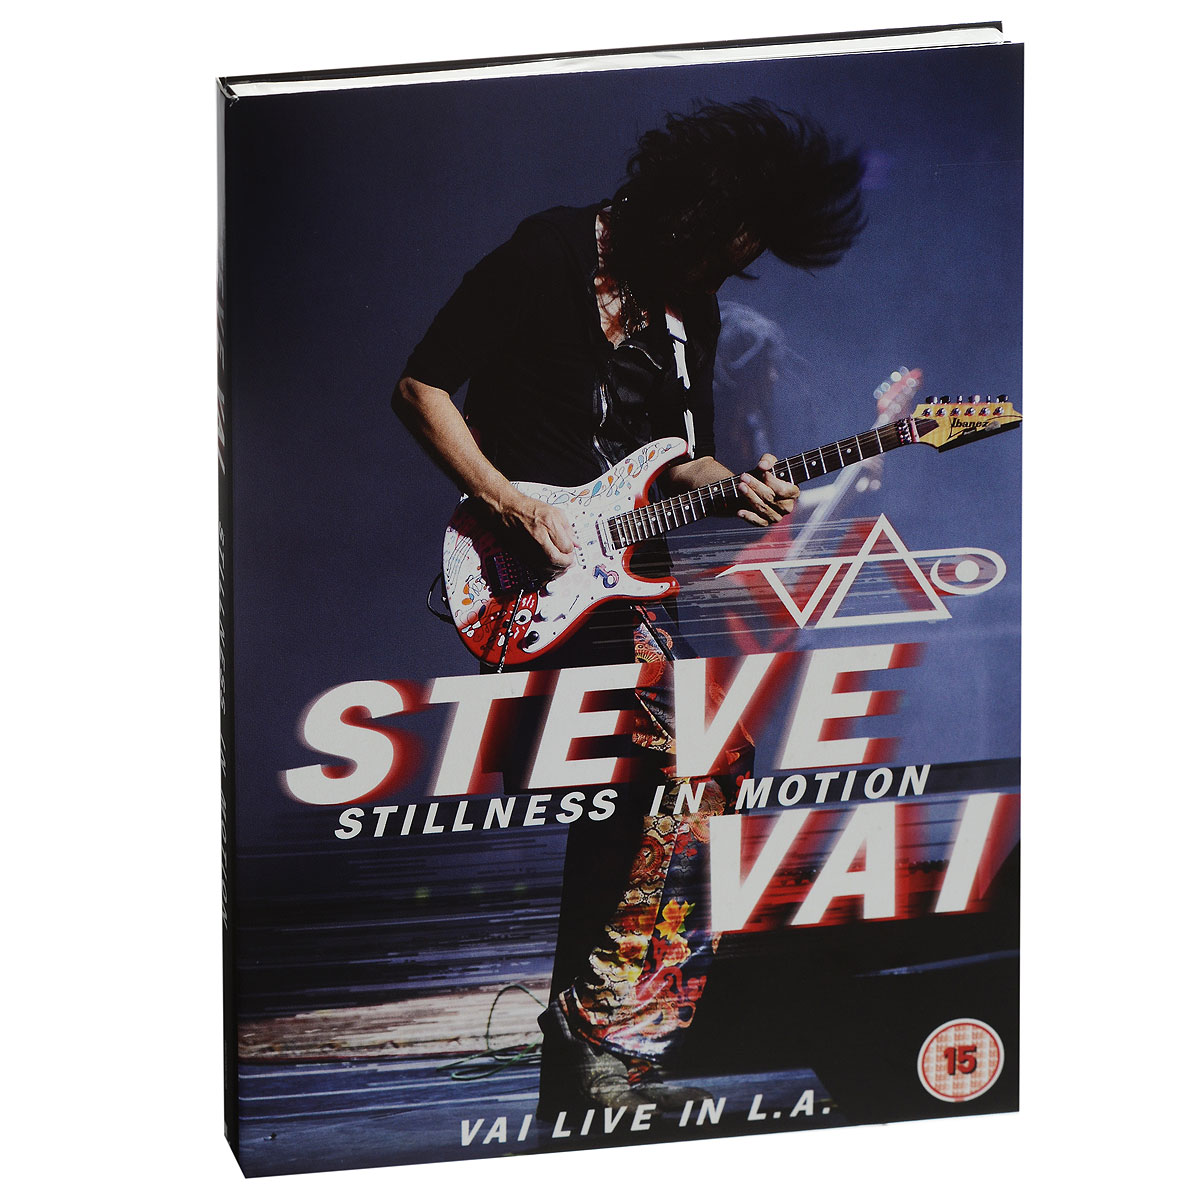 Steve Vai. Stillness In Motion. Vai Live In L.A. (2 DVD) helloween keeper on the seven keys the legacy world tour 2005 2006 2 dvd